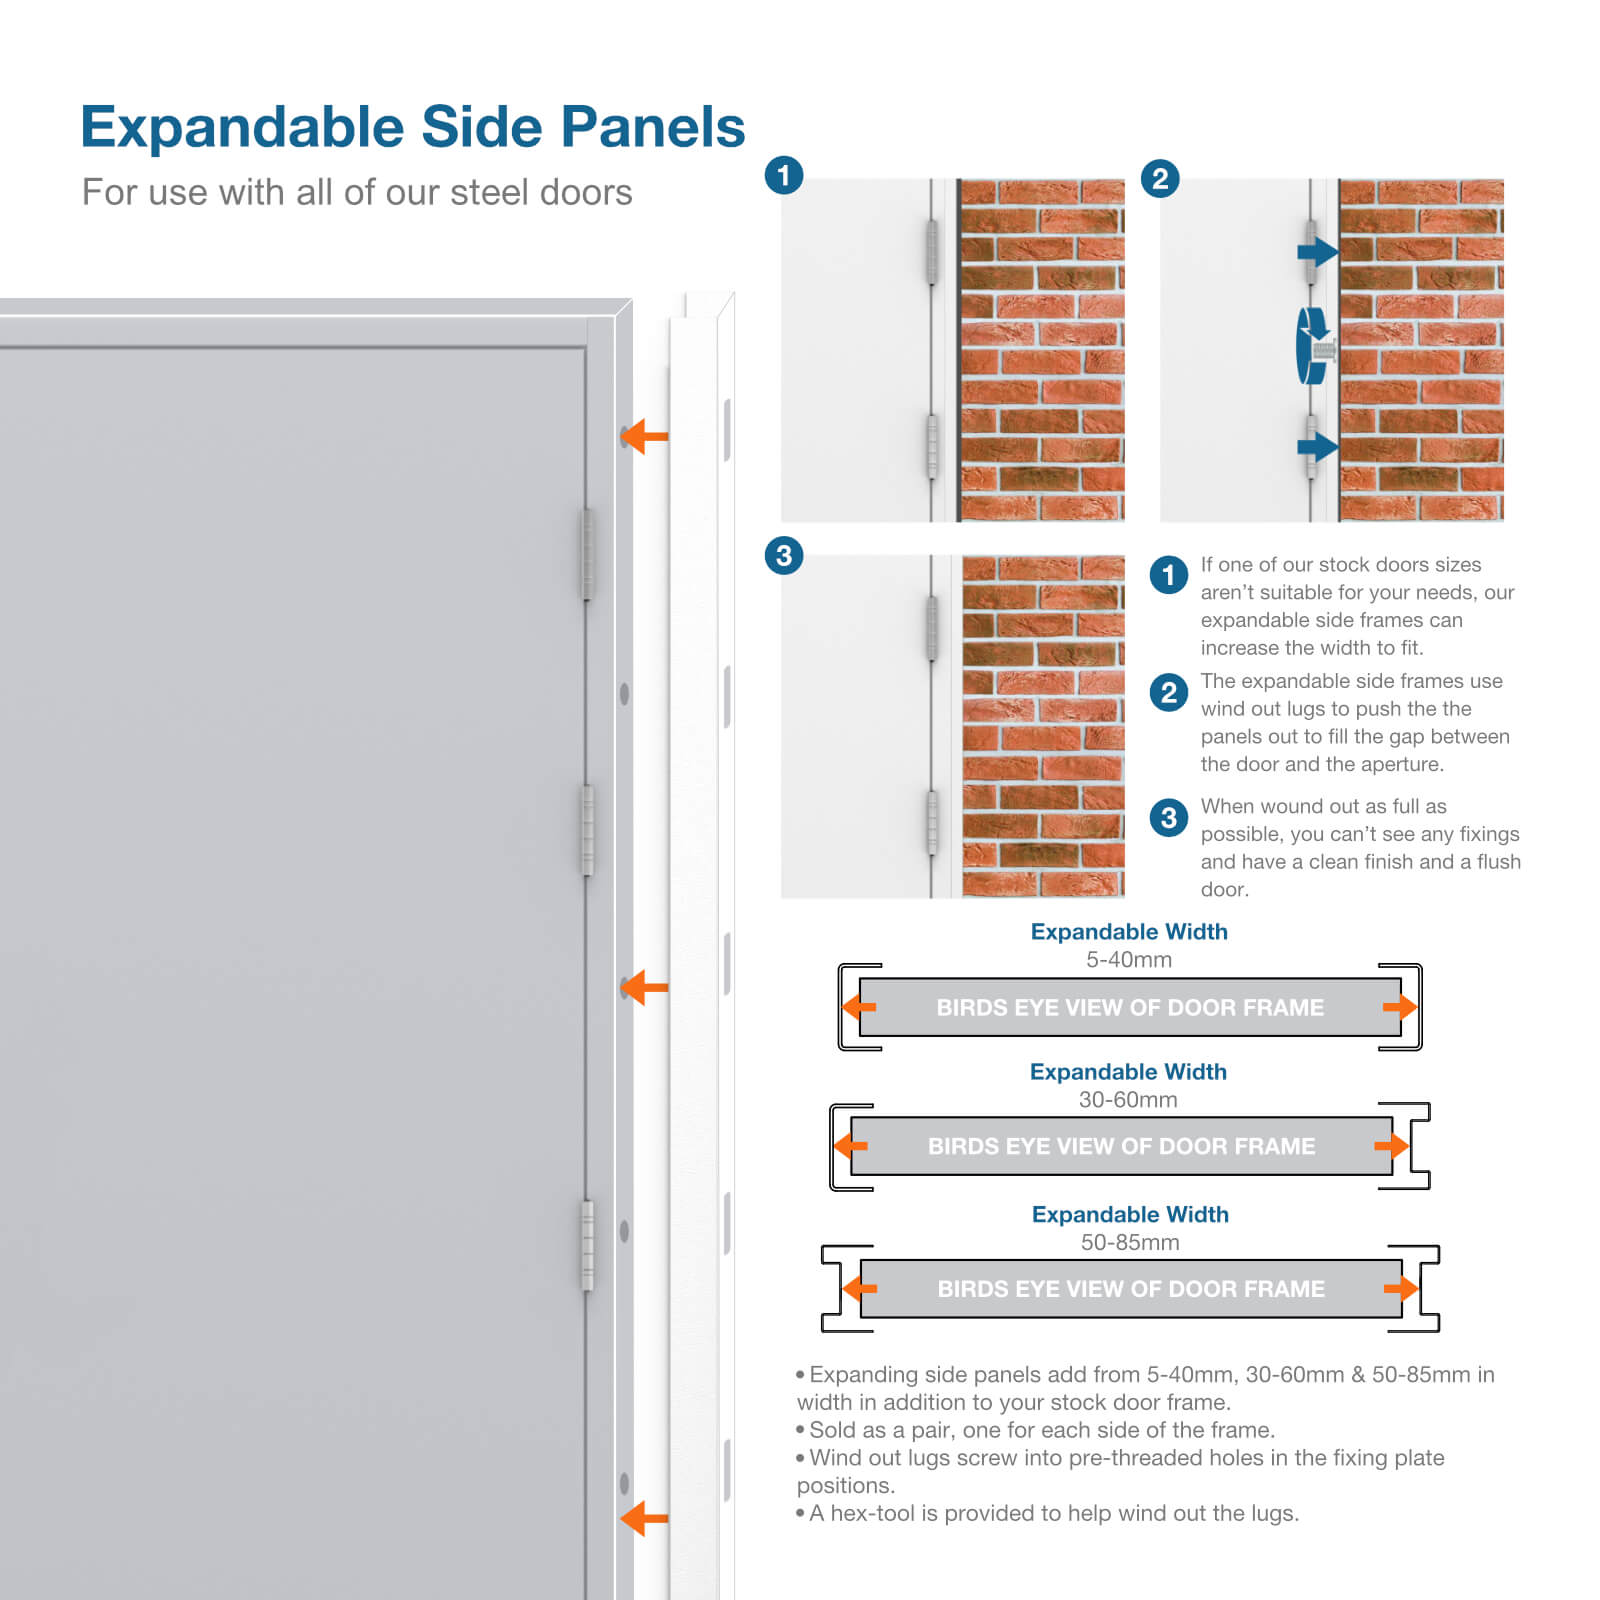 more information image for expandable side panels